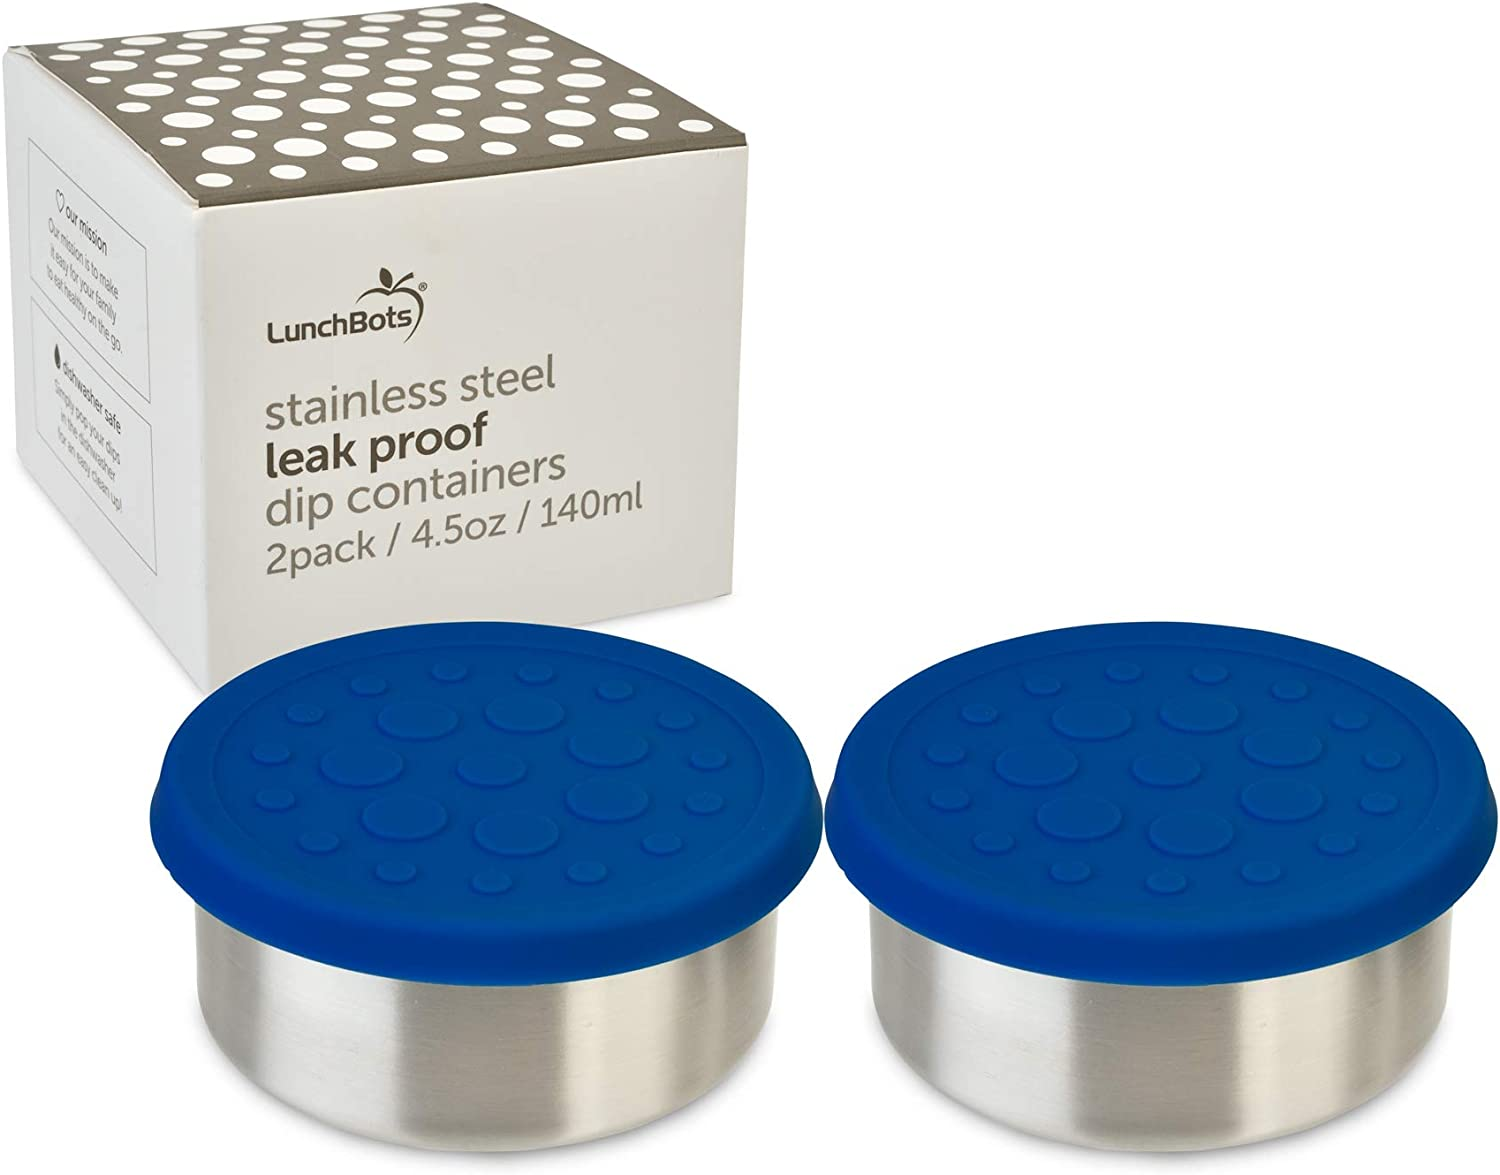 LunchBots 4.5oz Leak Proof Snack and Side Dish Containers - Set of 2 (4.5 oz) - Spill Proof in Bags and Bento Boxes - Food Grade Stainless Steel and Silicone Lids - Dishwasher Safe - Blue Set